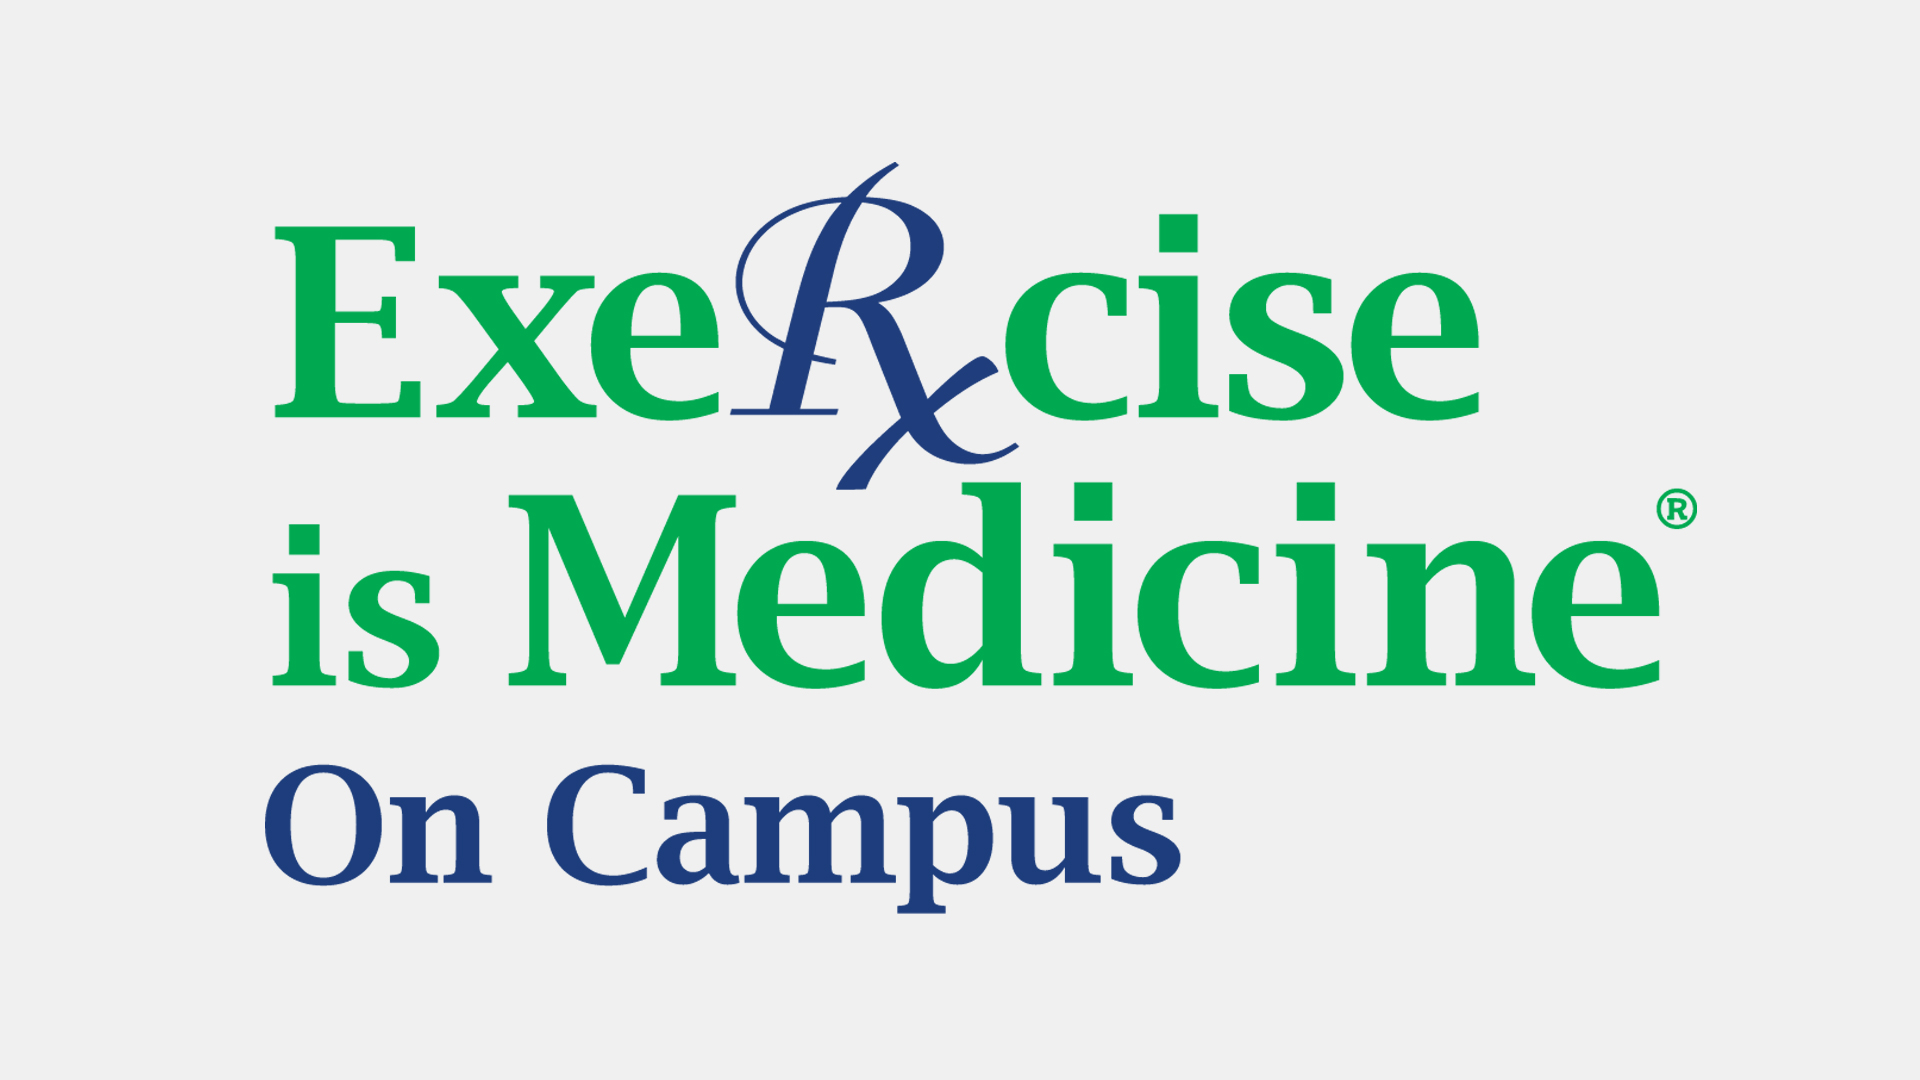 Exercise is Medicine on Campus club